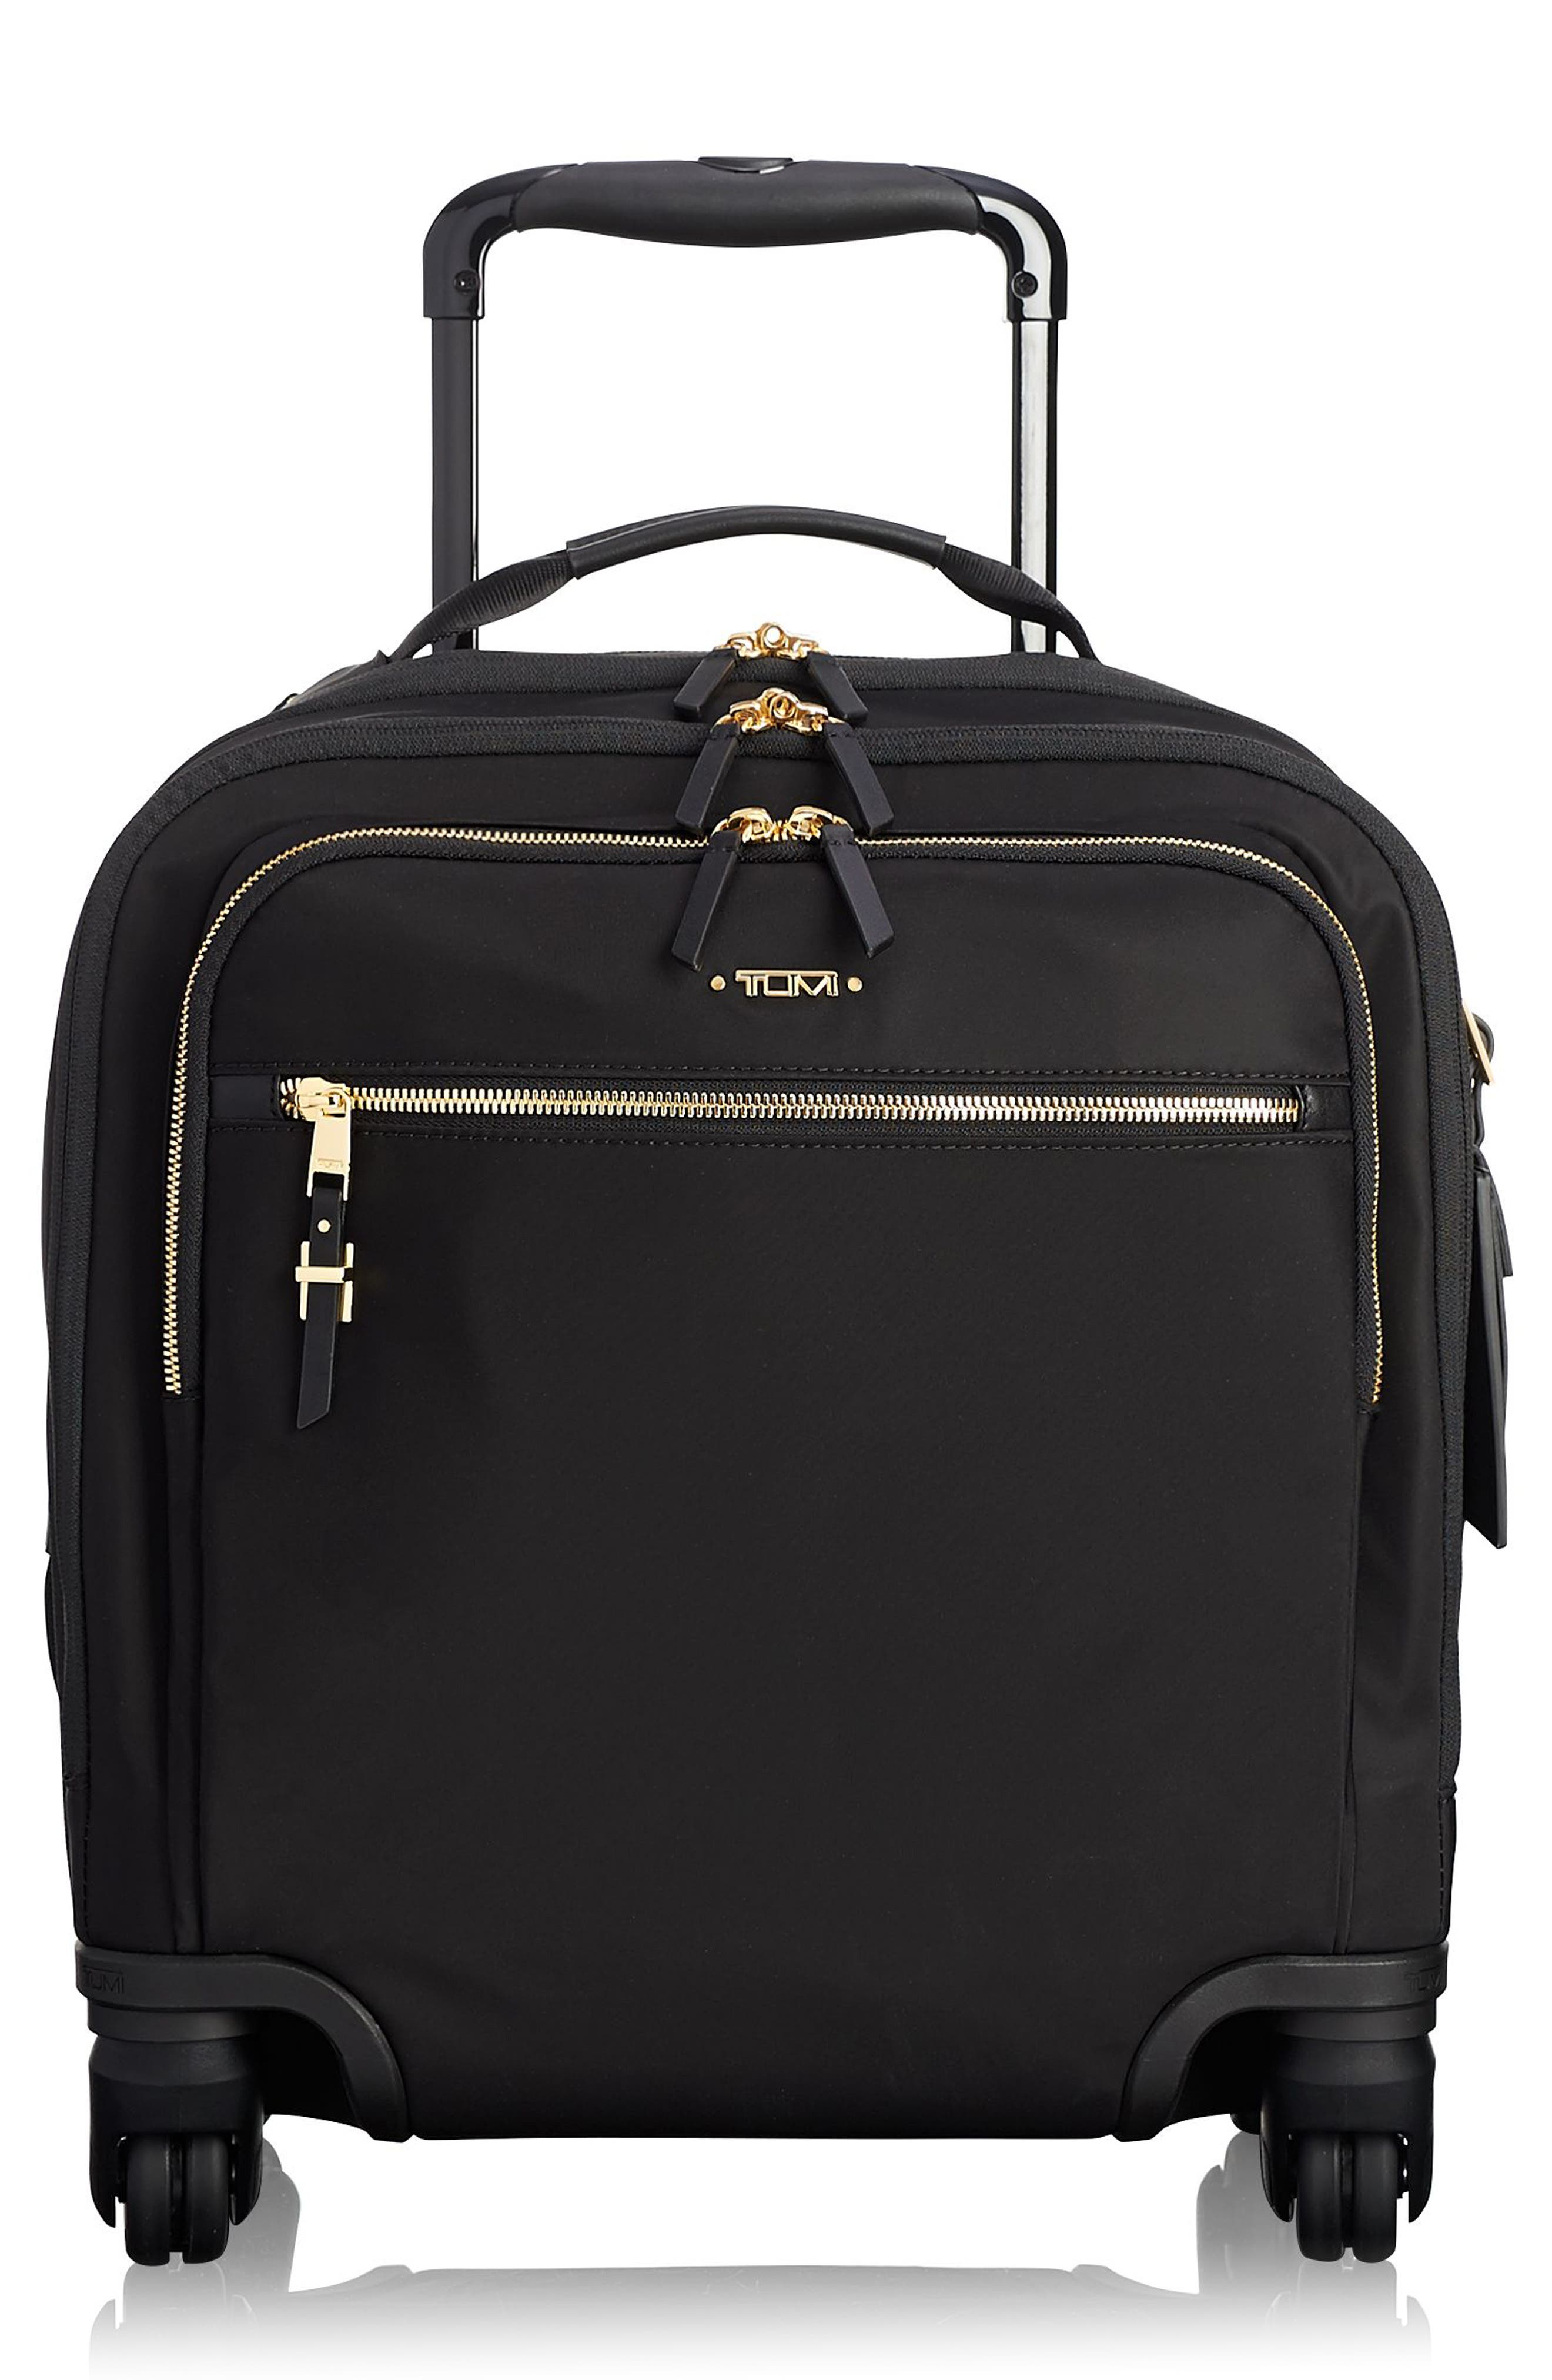 TUMI Voyageur Osona 16-Inch Compact Carry-On, Main, color, BLACK